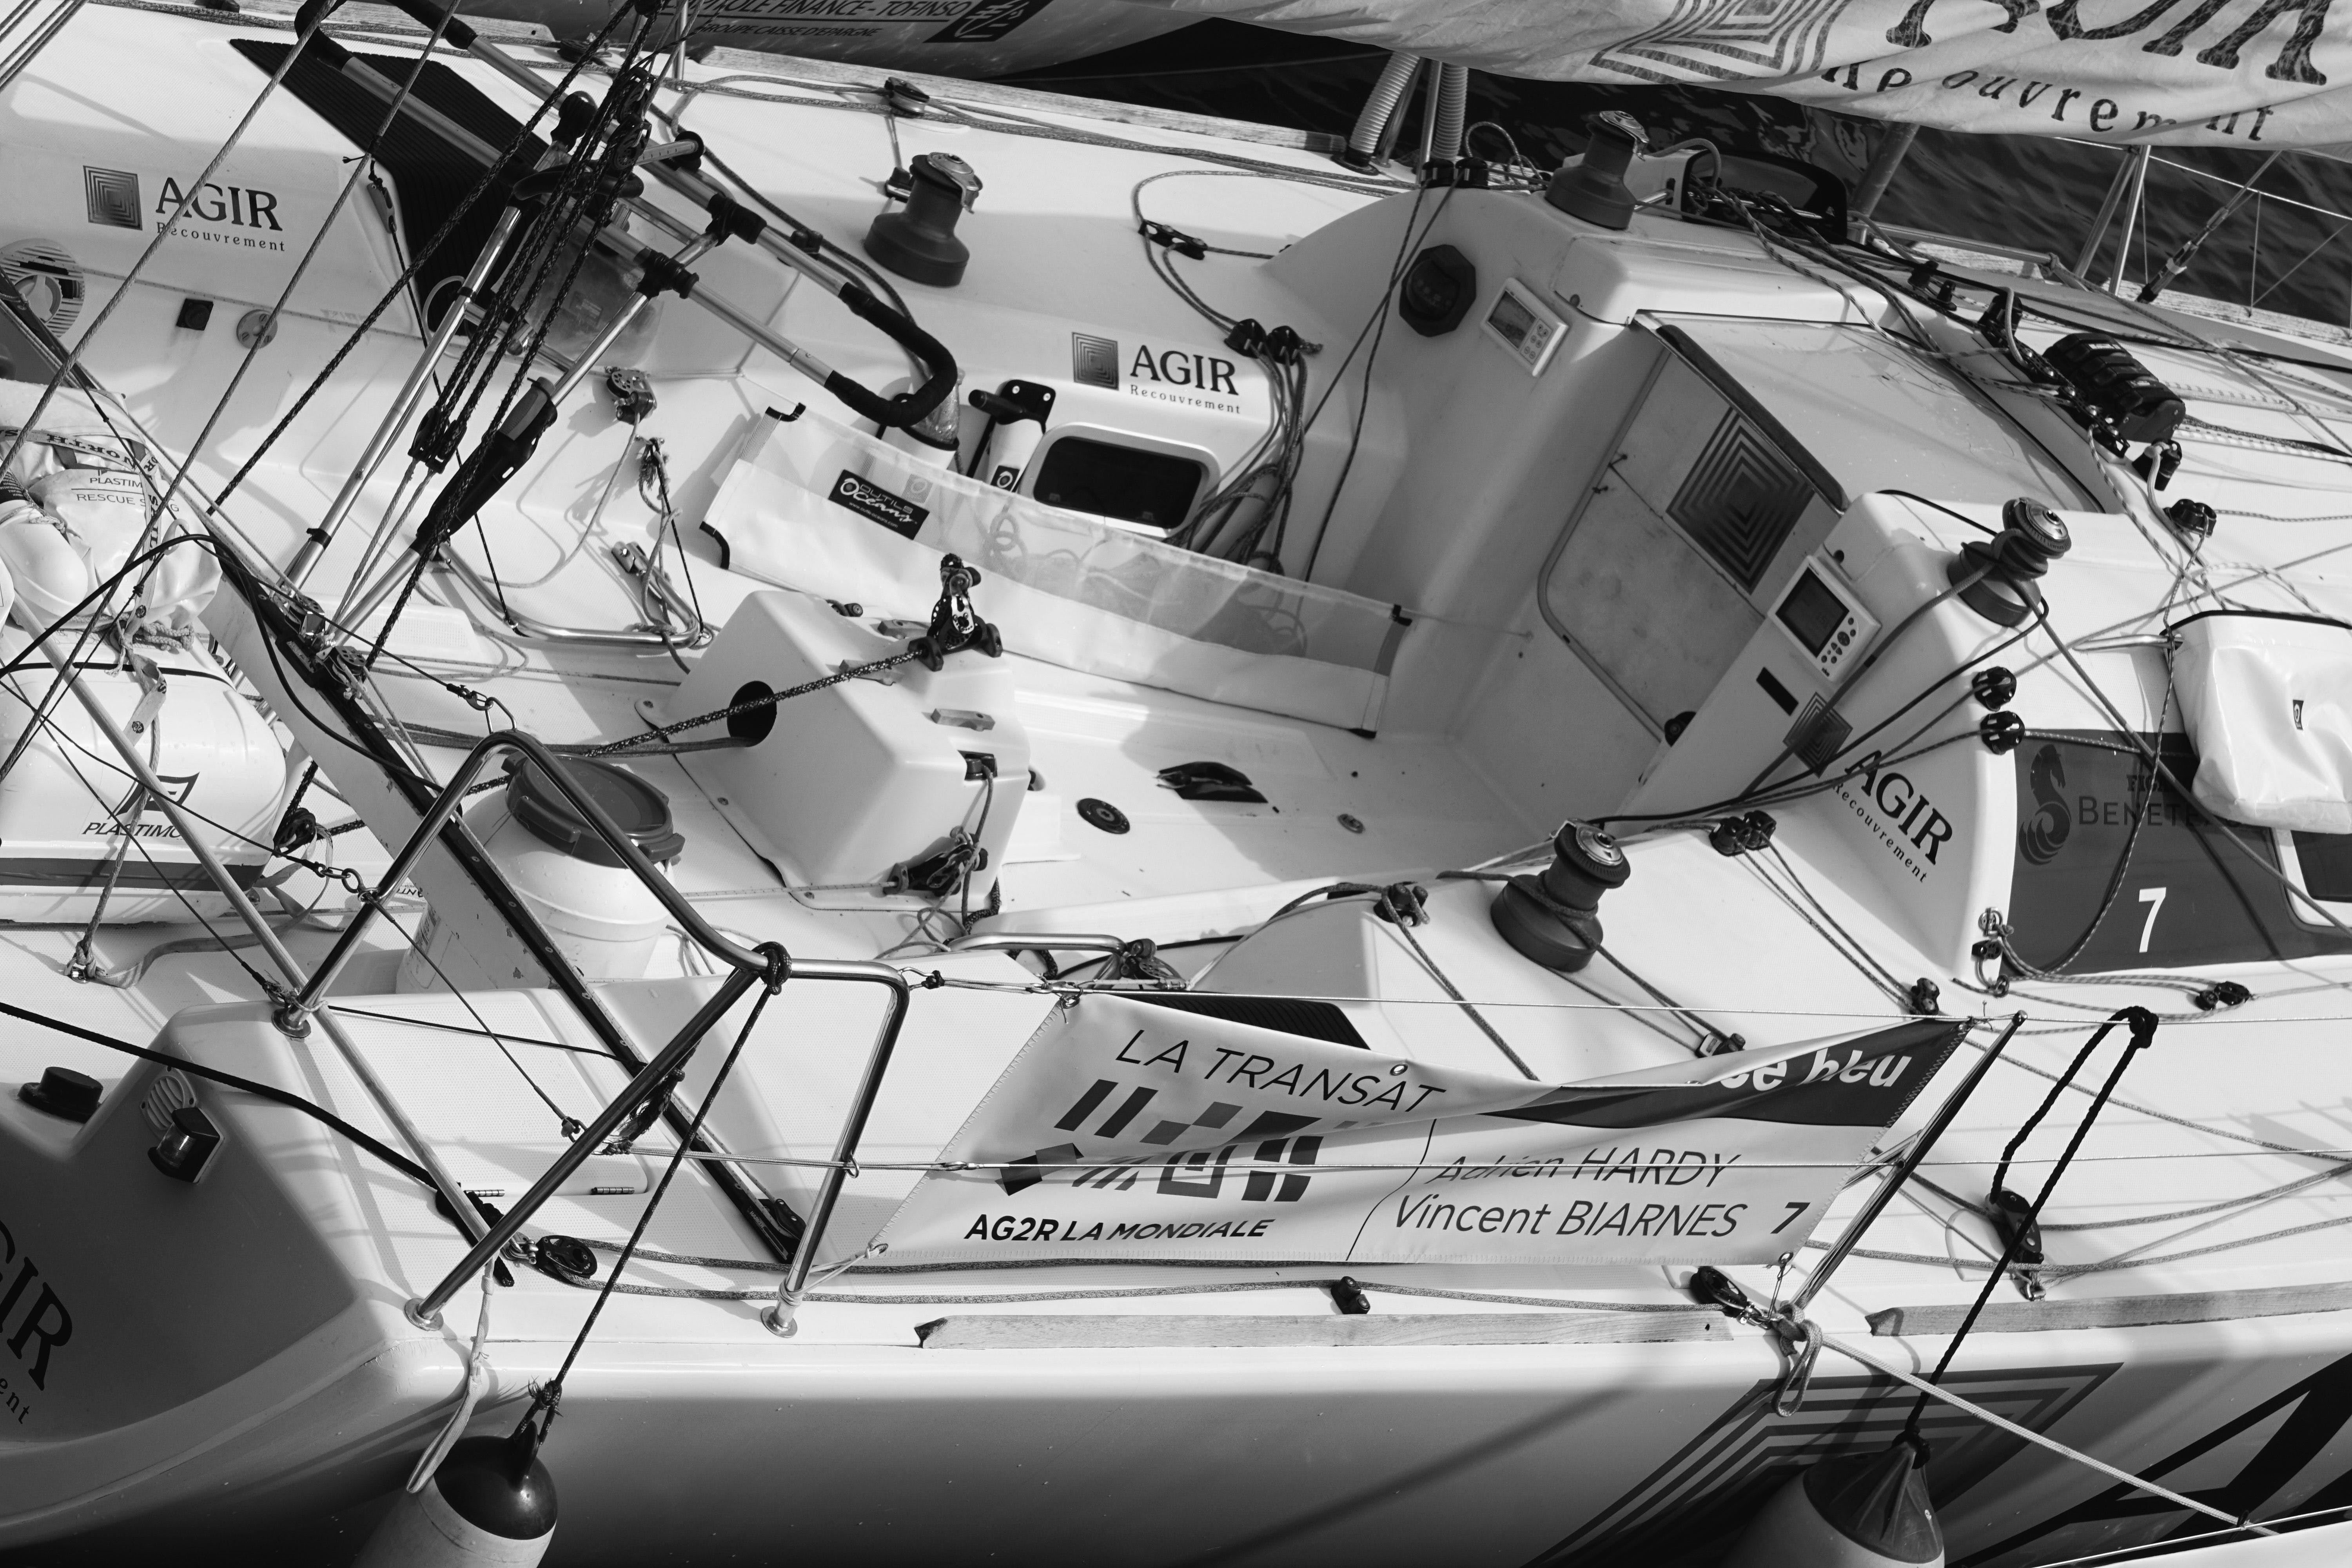 White and Black Boat